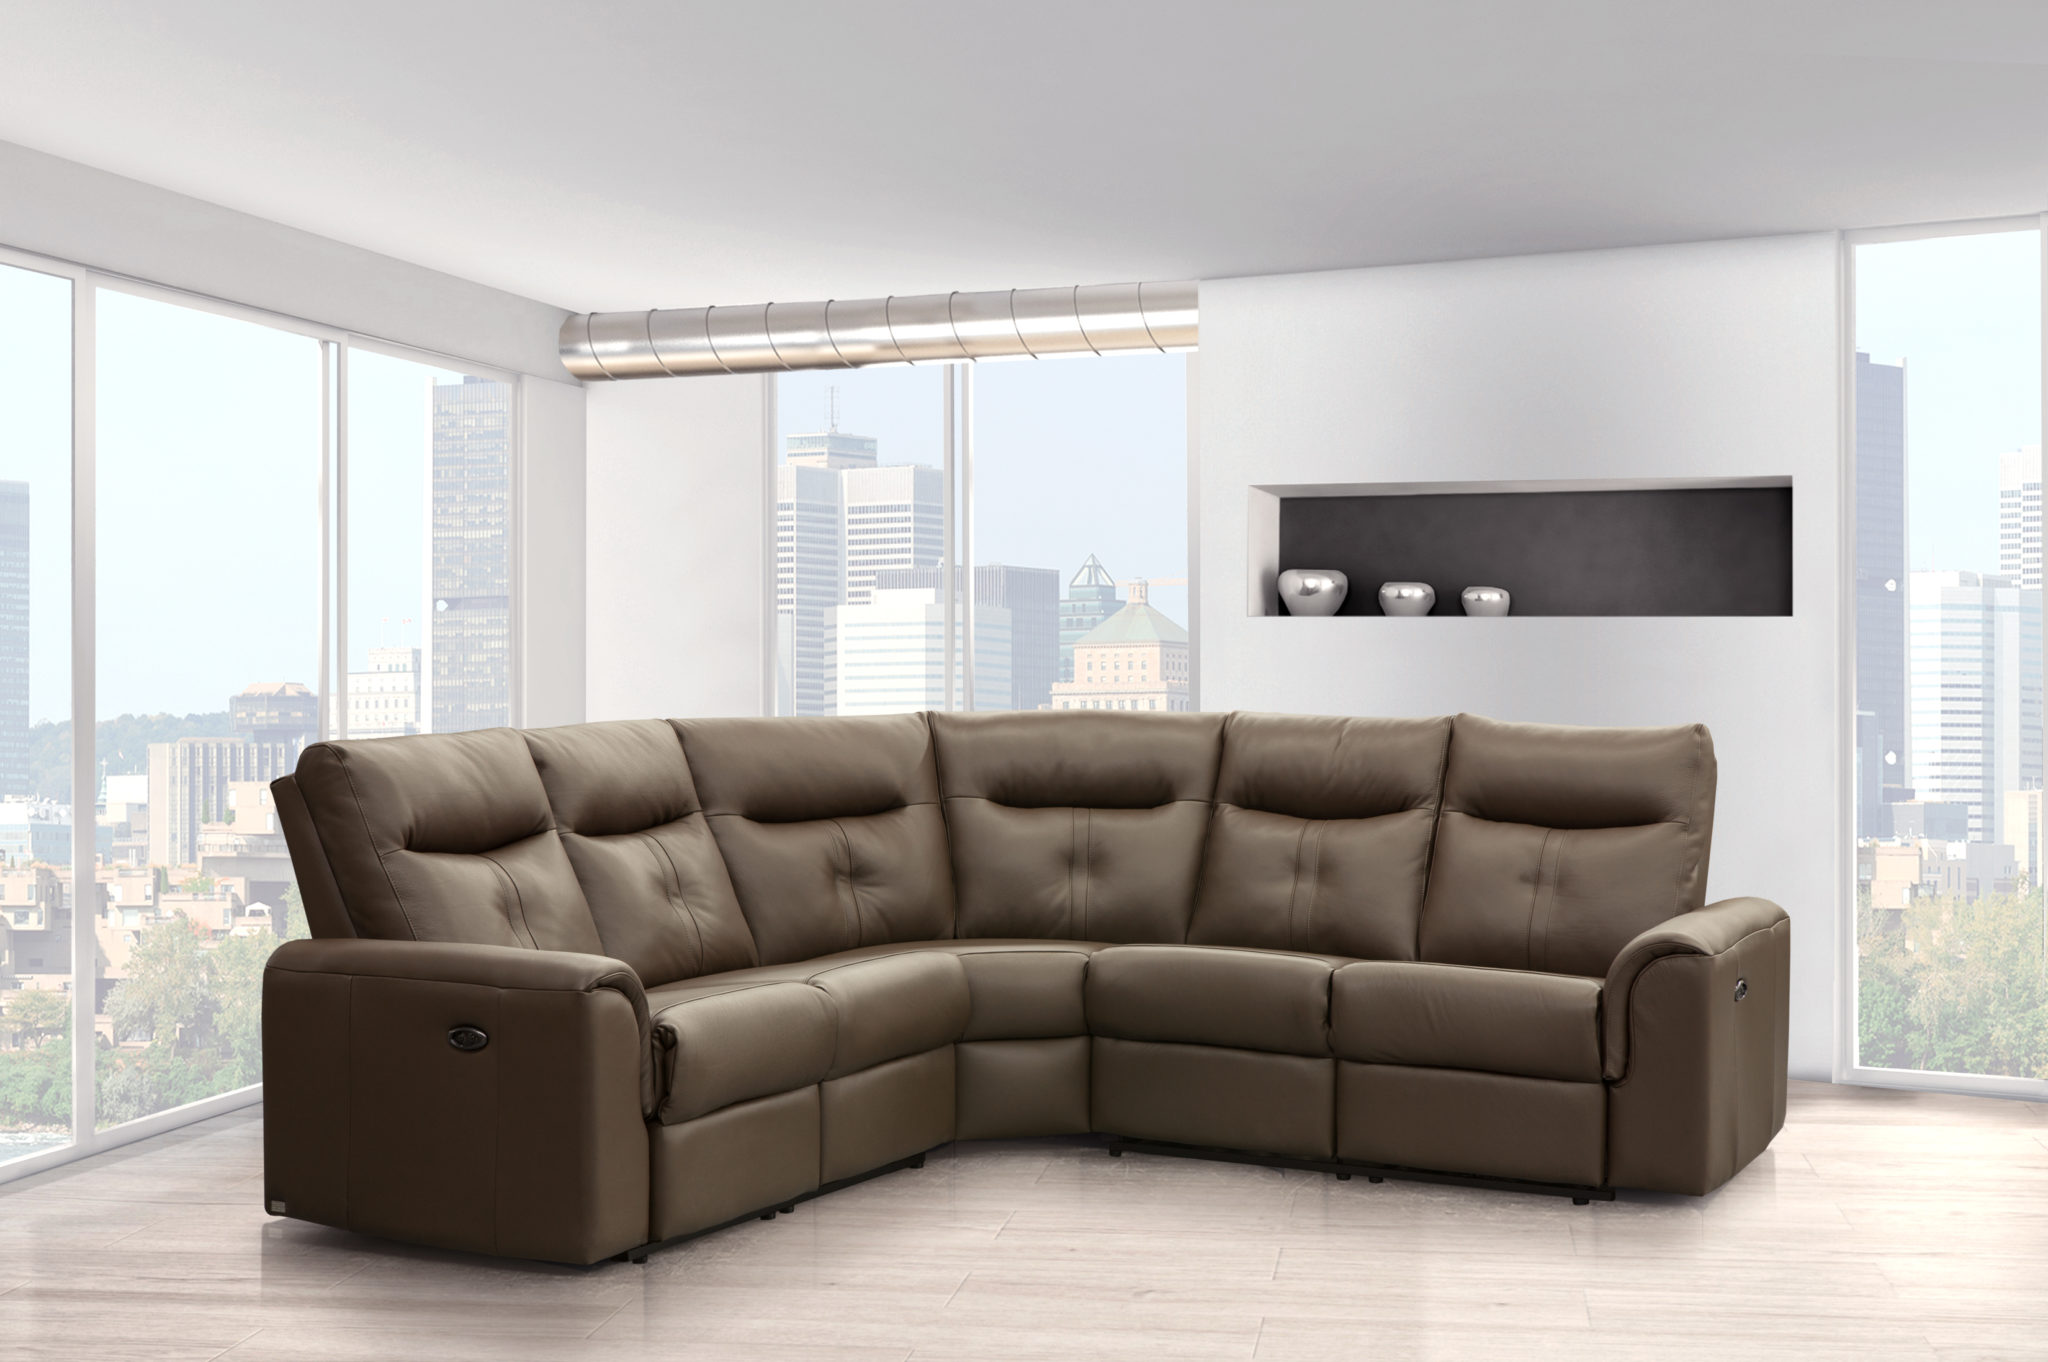 Elran 4016 Electric Reclining Leather Sectional